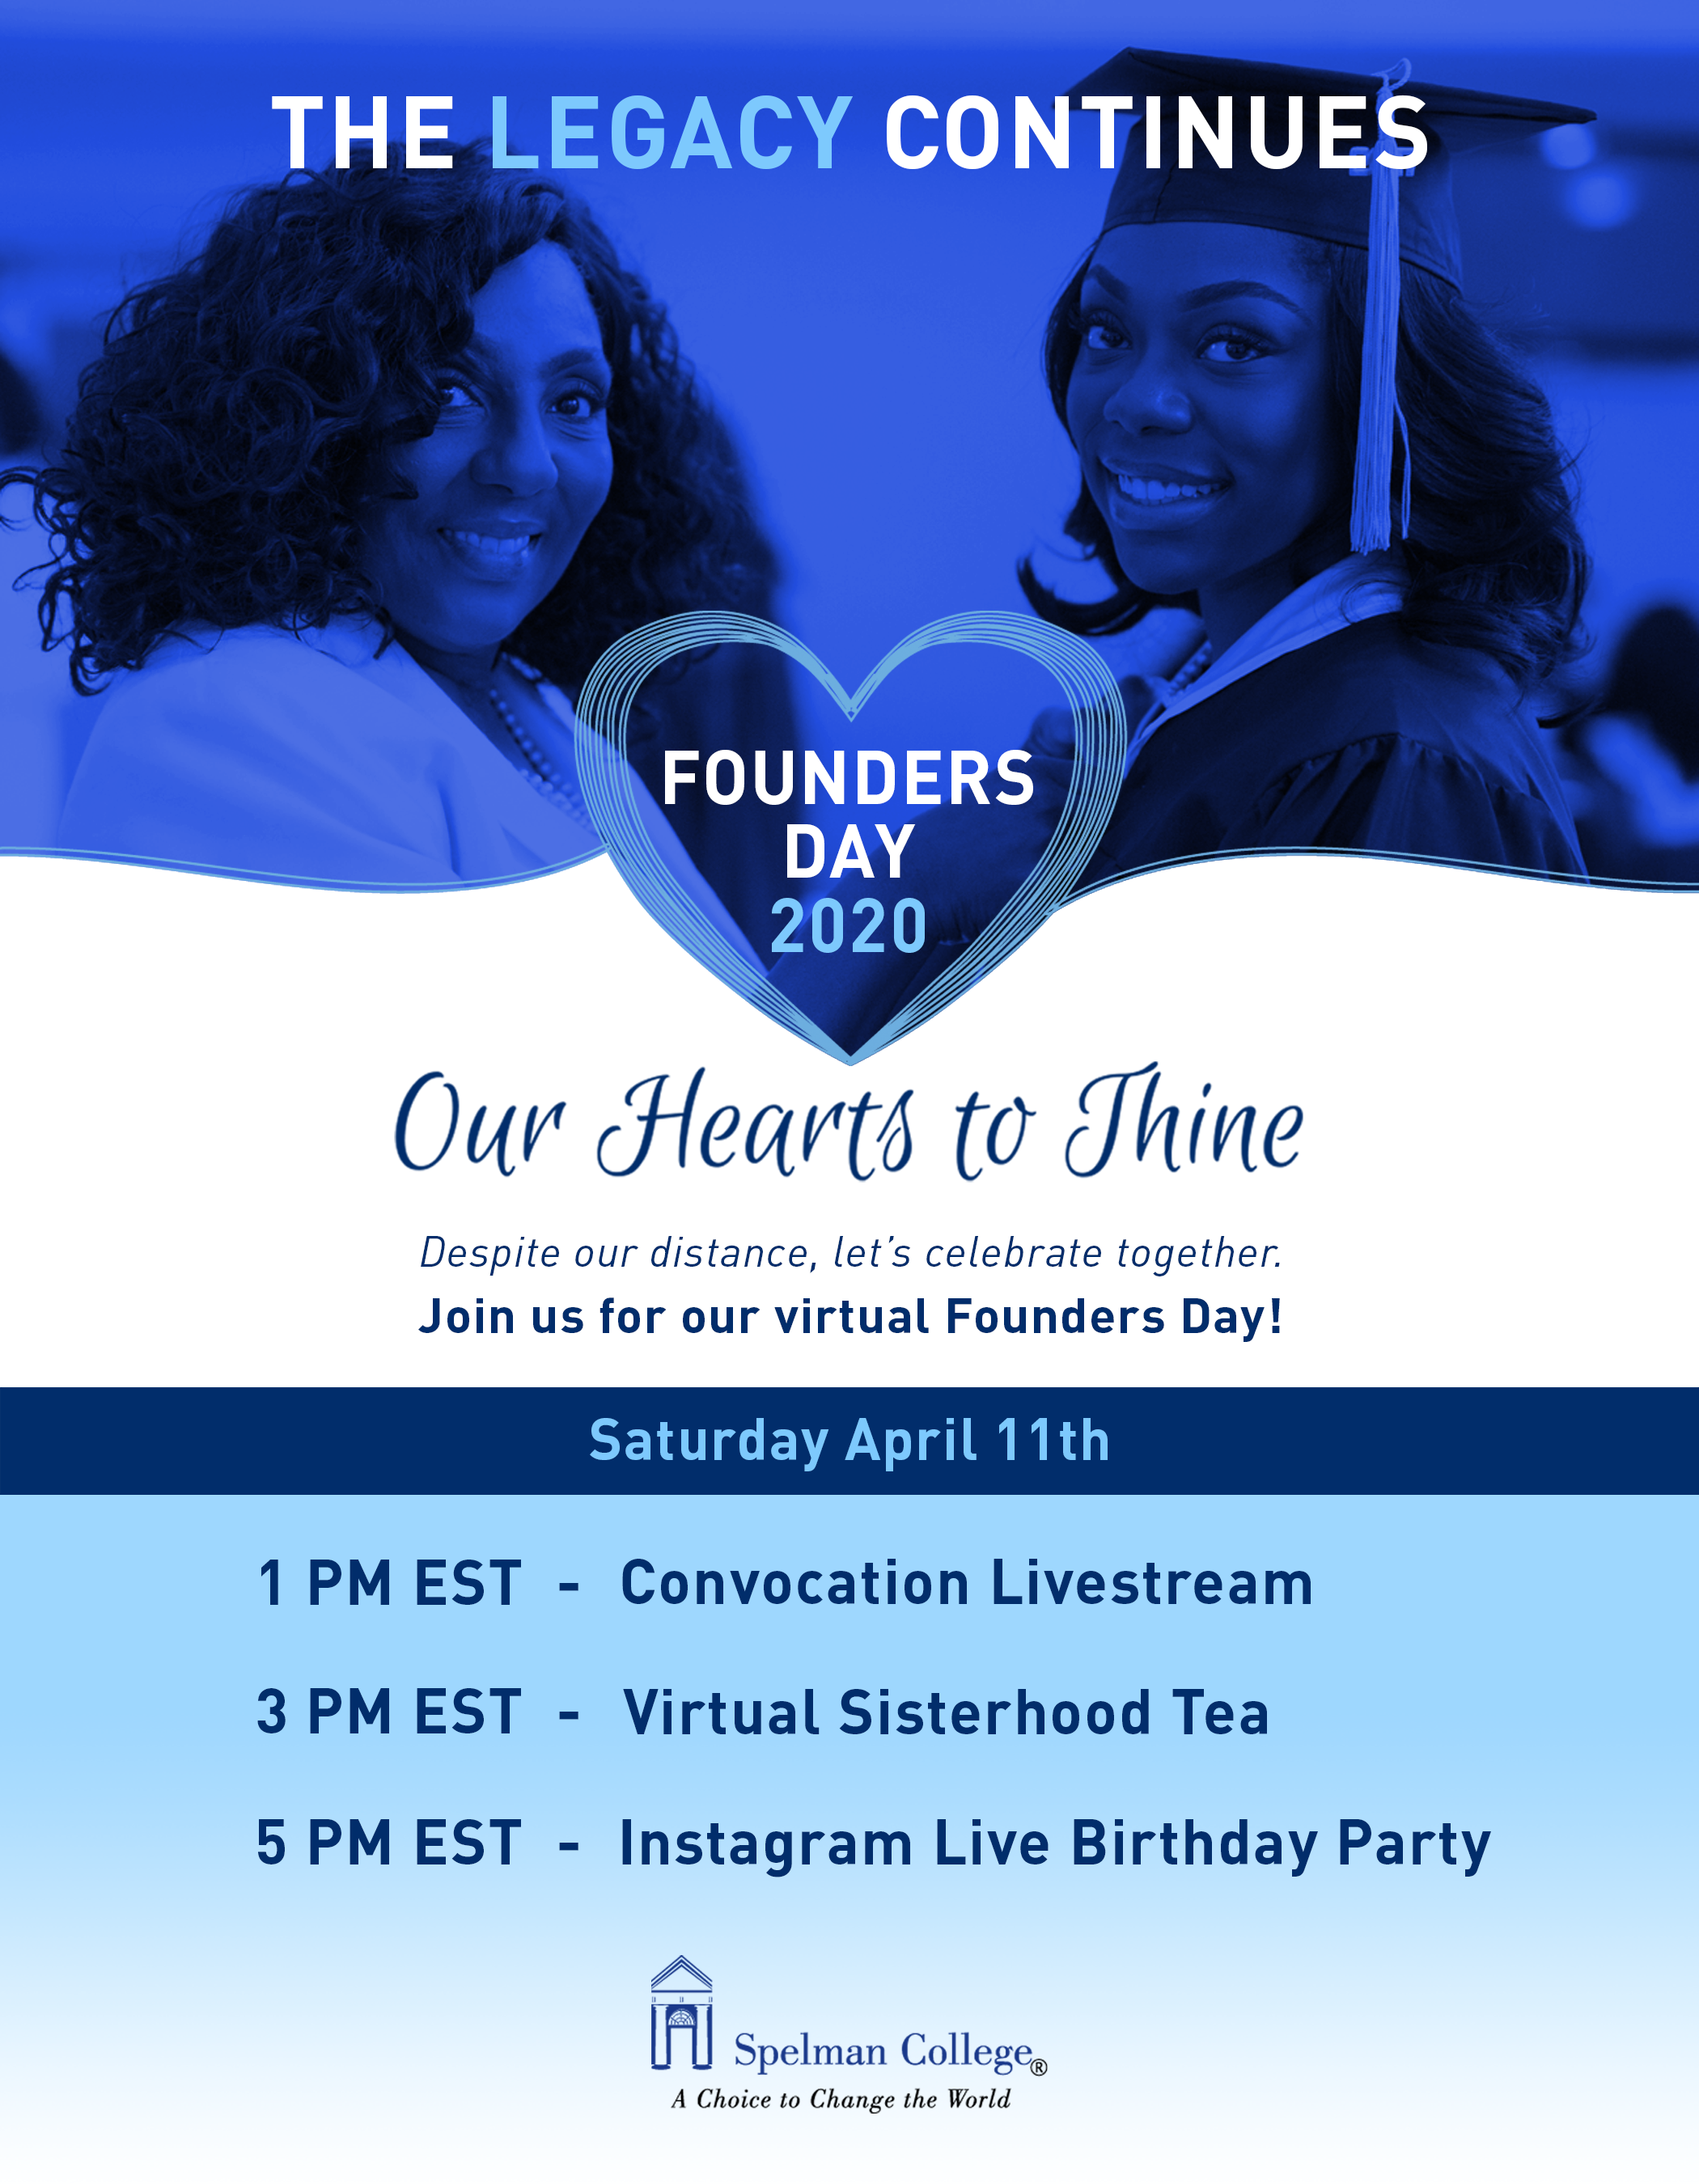 Spelman College's Virtual Founders Day 2020